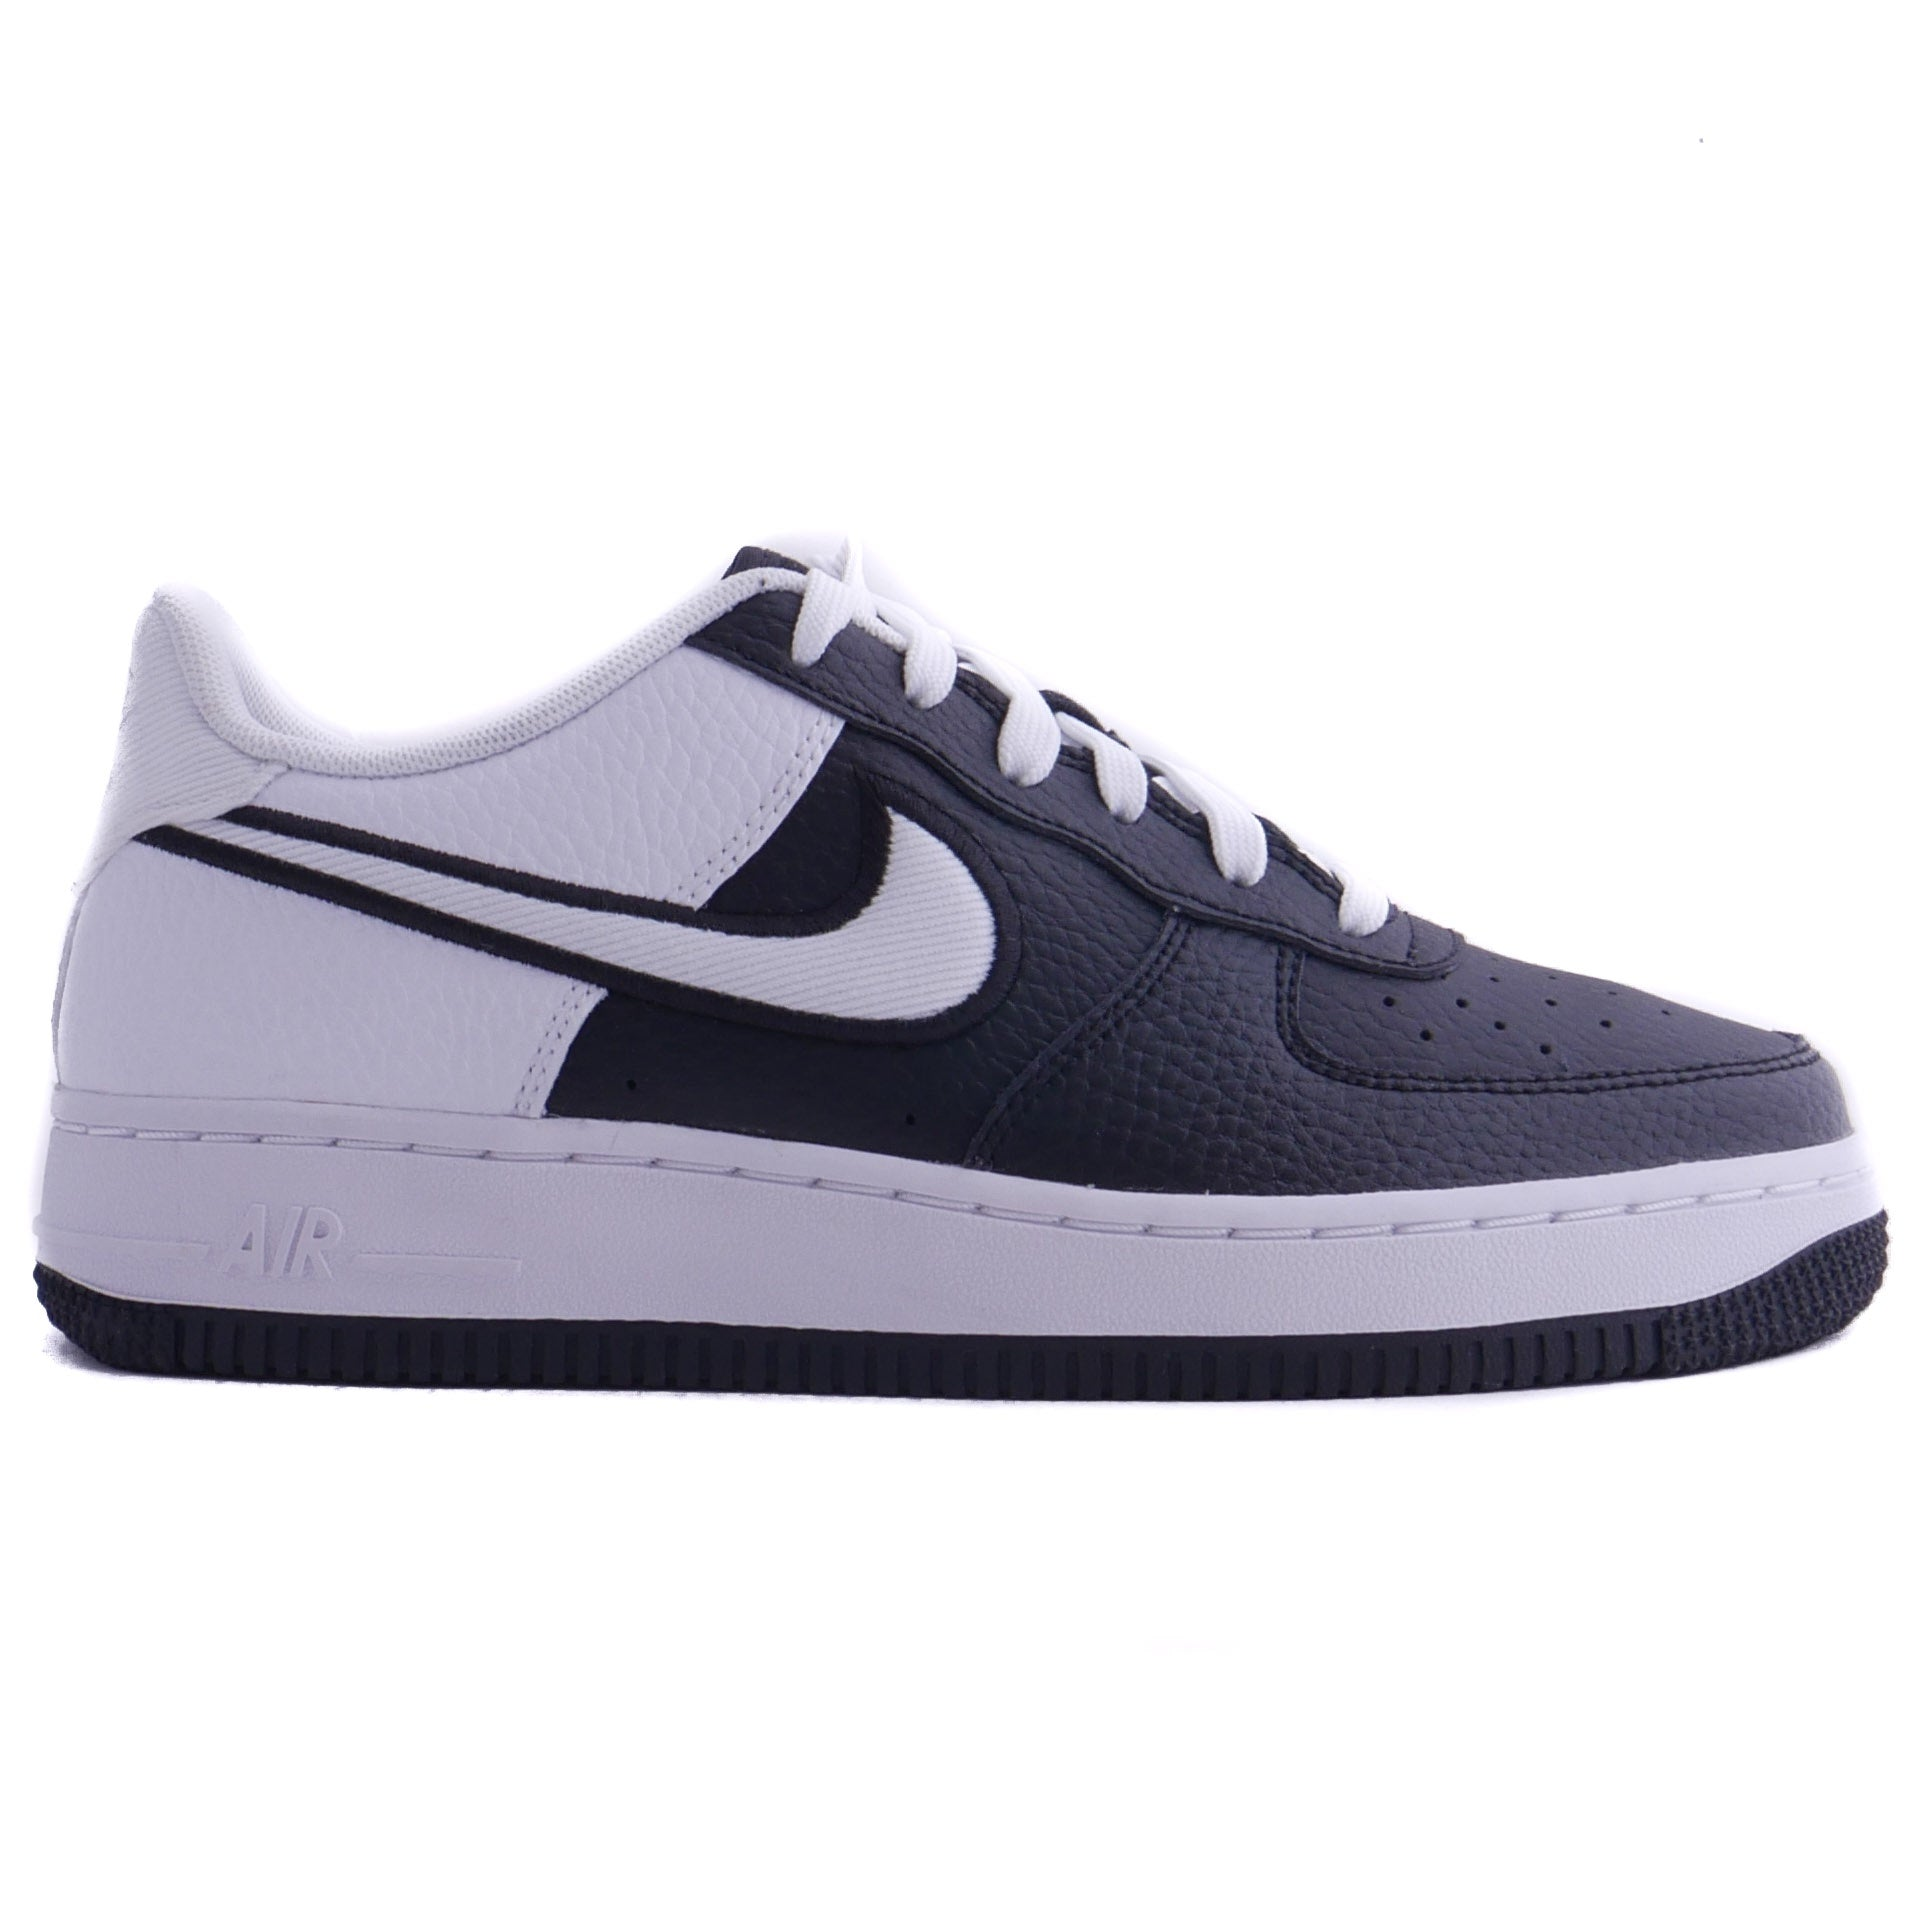 uk availability 60893 57dfd Nike Kids Air Force 1 LV8 White Black (GS)